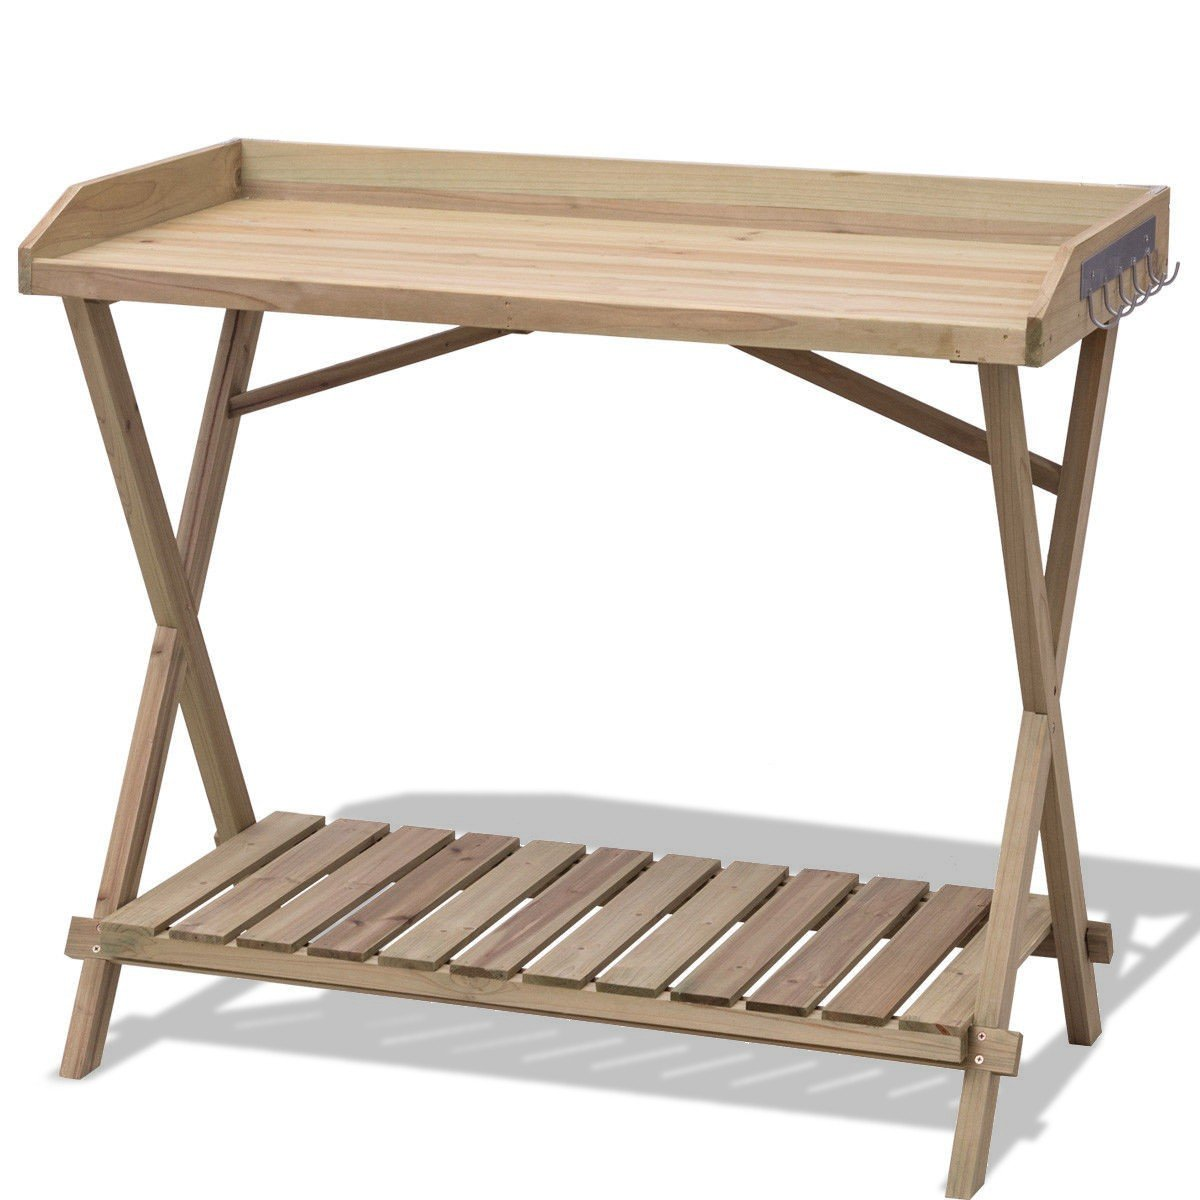 Wood Potting Bench Table Plant Stand W/ Hook Garden Lawn Patio With Ebook